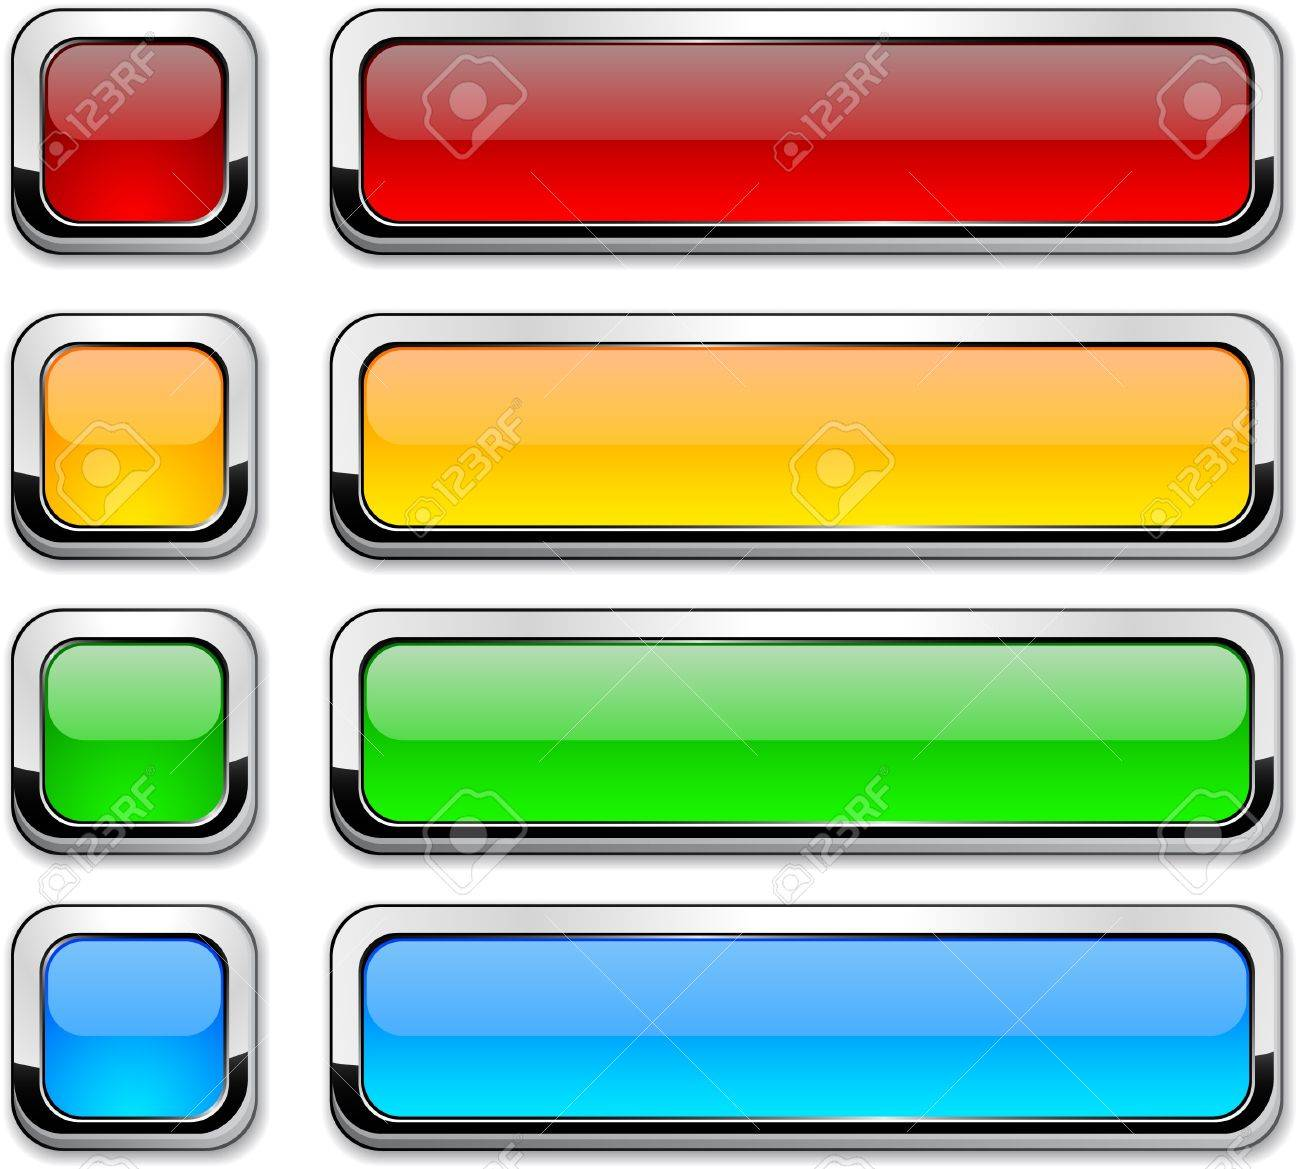 Set of buttons with metallic borders. Stock Vector - 8708455